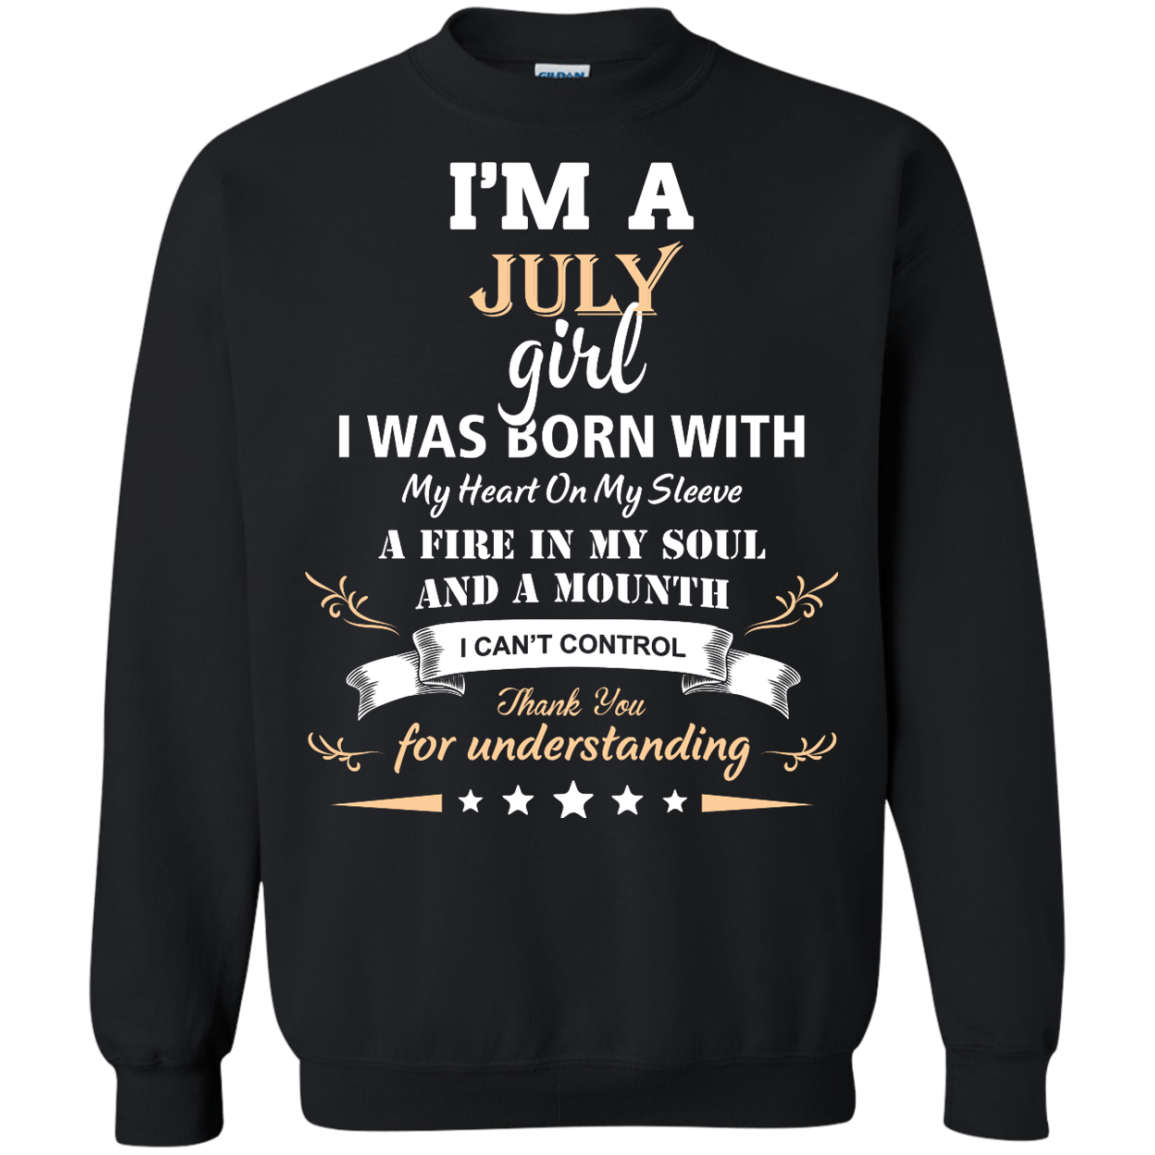 Im a July girl shirts I was born with my heart on my sleeve a fine in my soul t shirt,tank,sweater